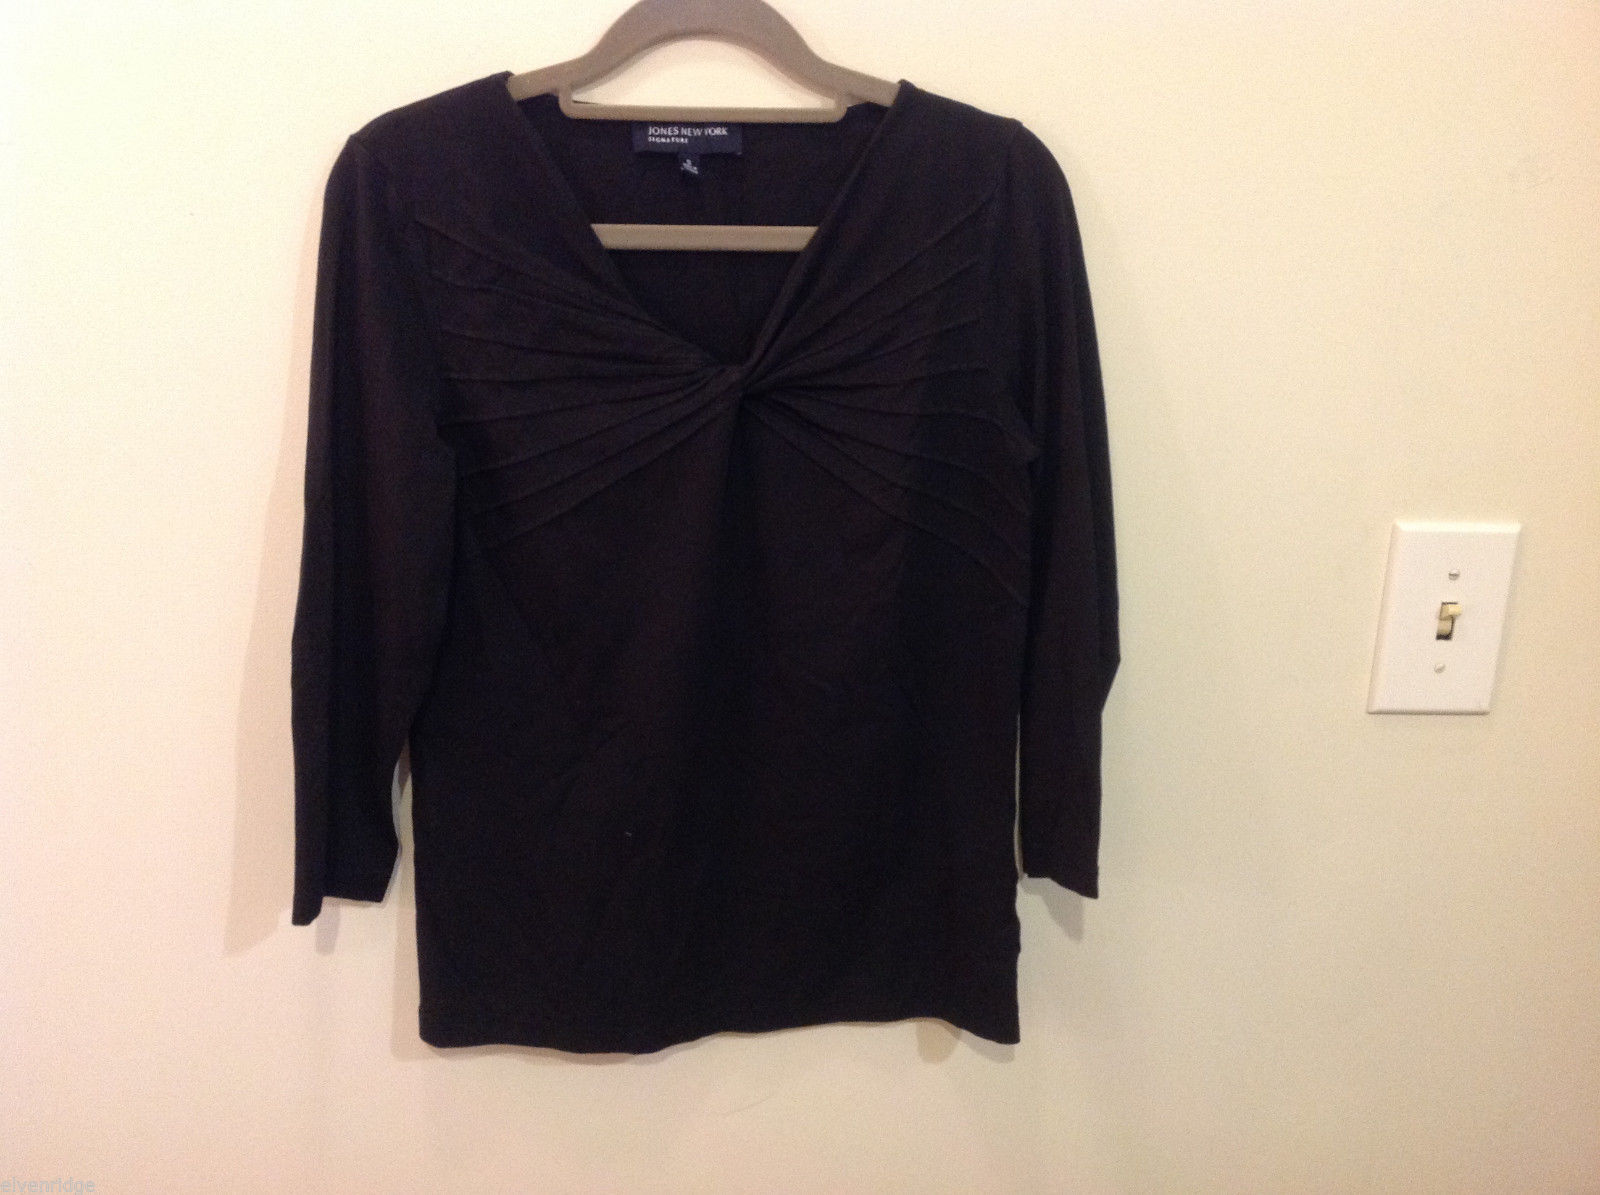 Jones New York V-neck Stretchy Cotton Black 3/4 sleeve Blouse Top, Size S